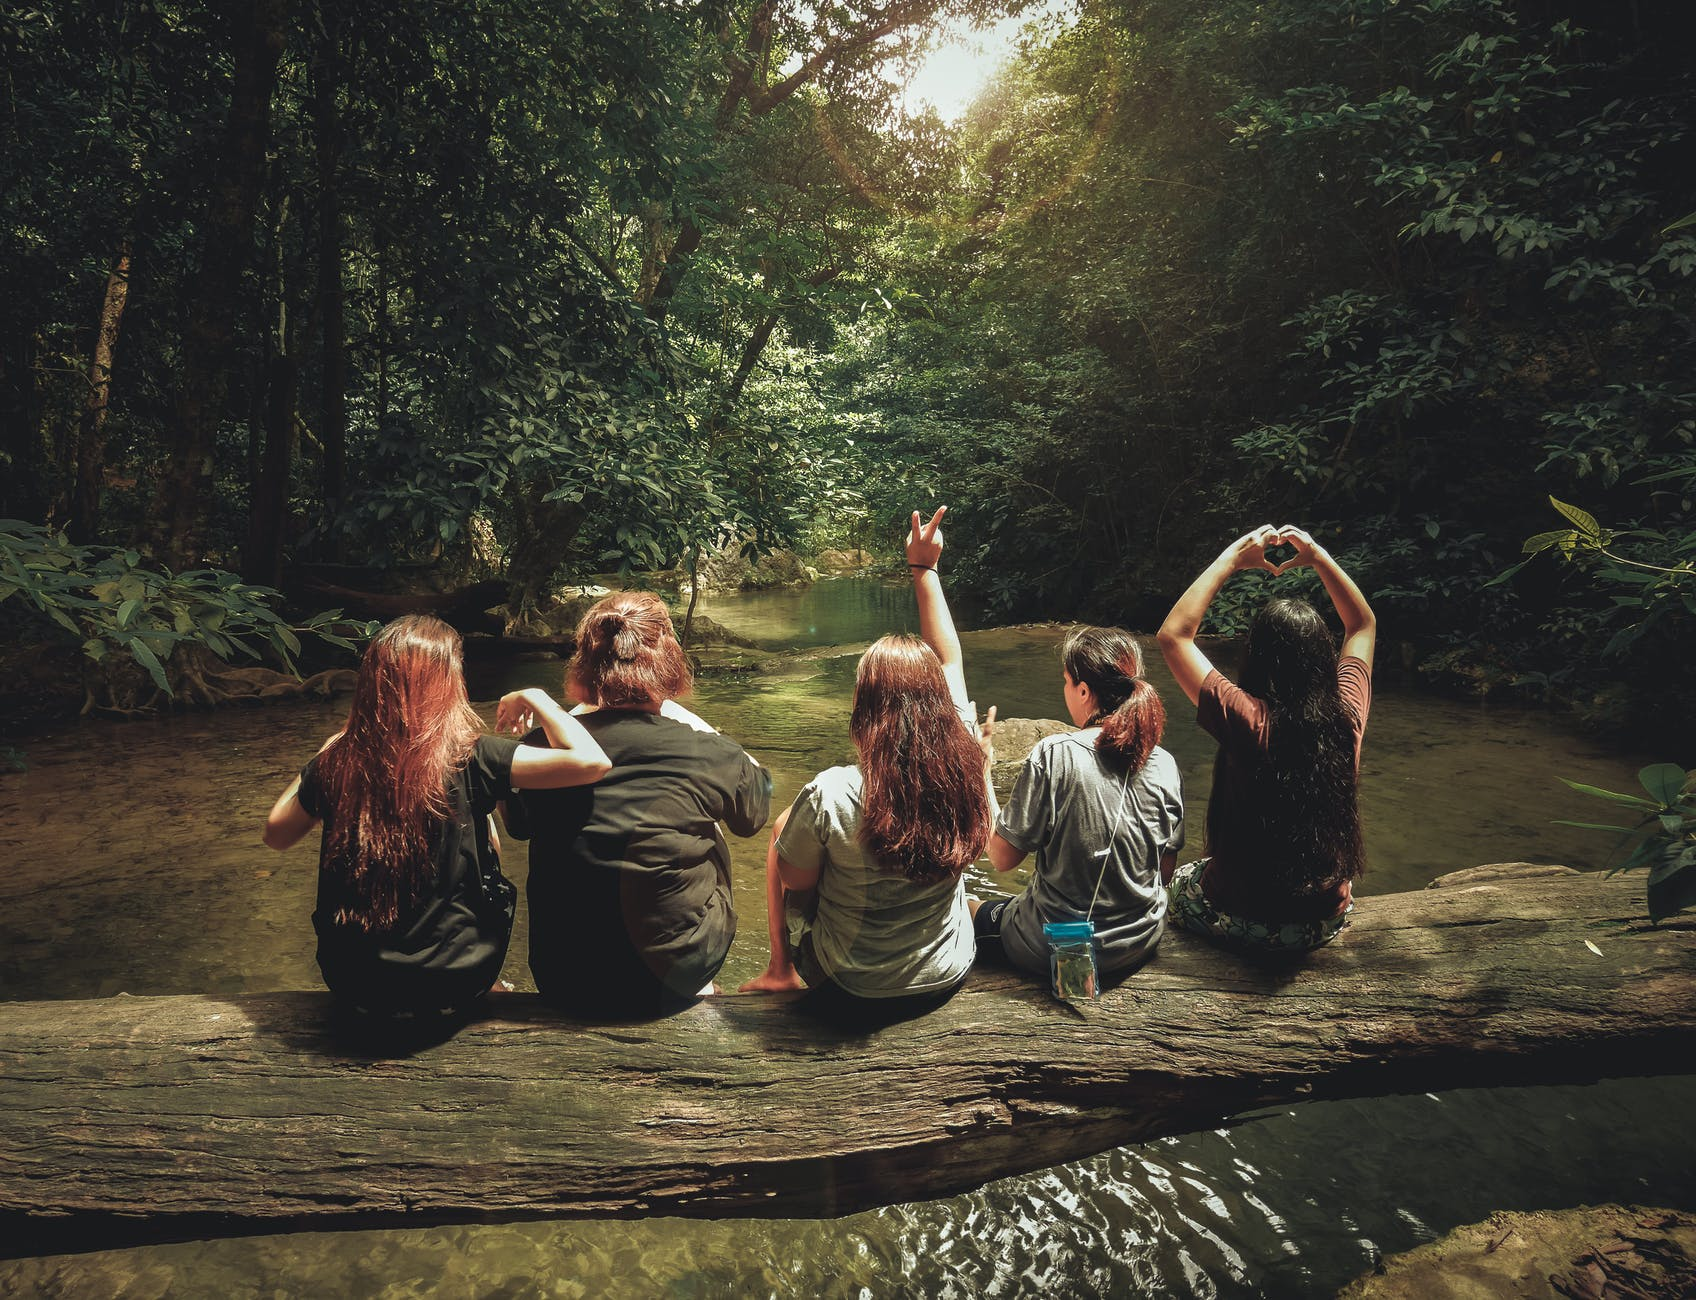 Five girls sitting on a tree trunk